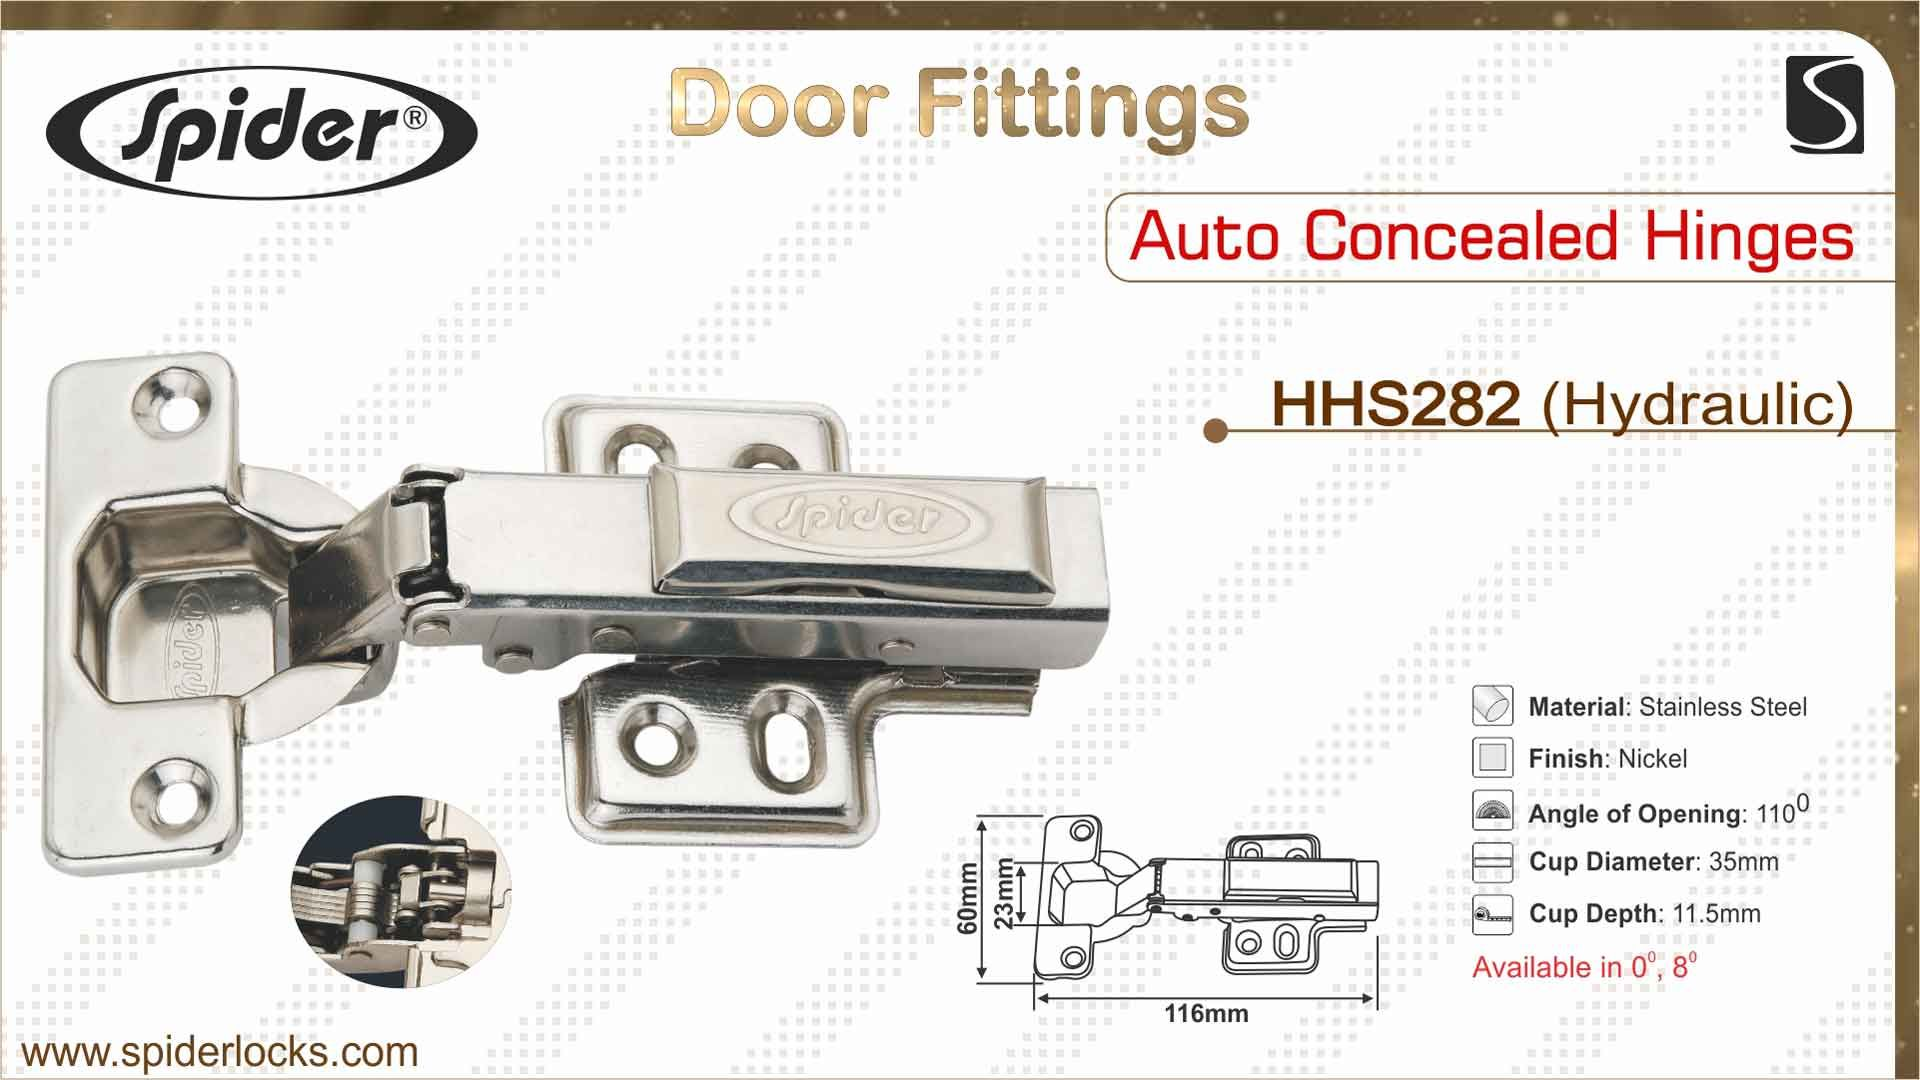 AUTO CONCEALED HINGES HHS282 HYDRAULIC